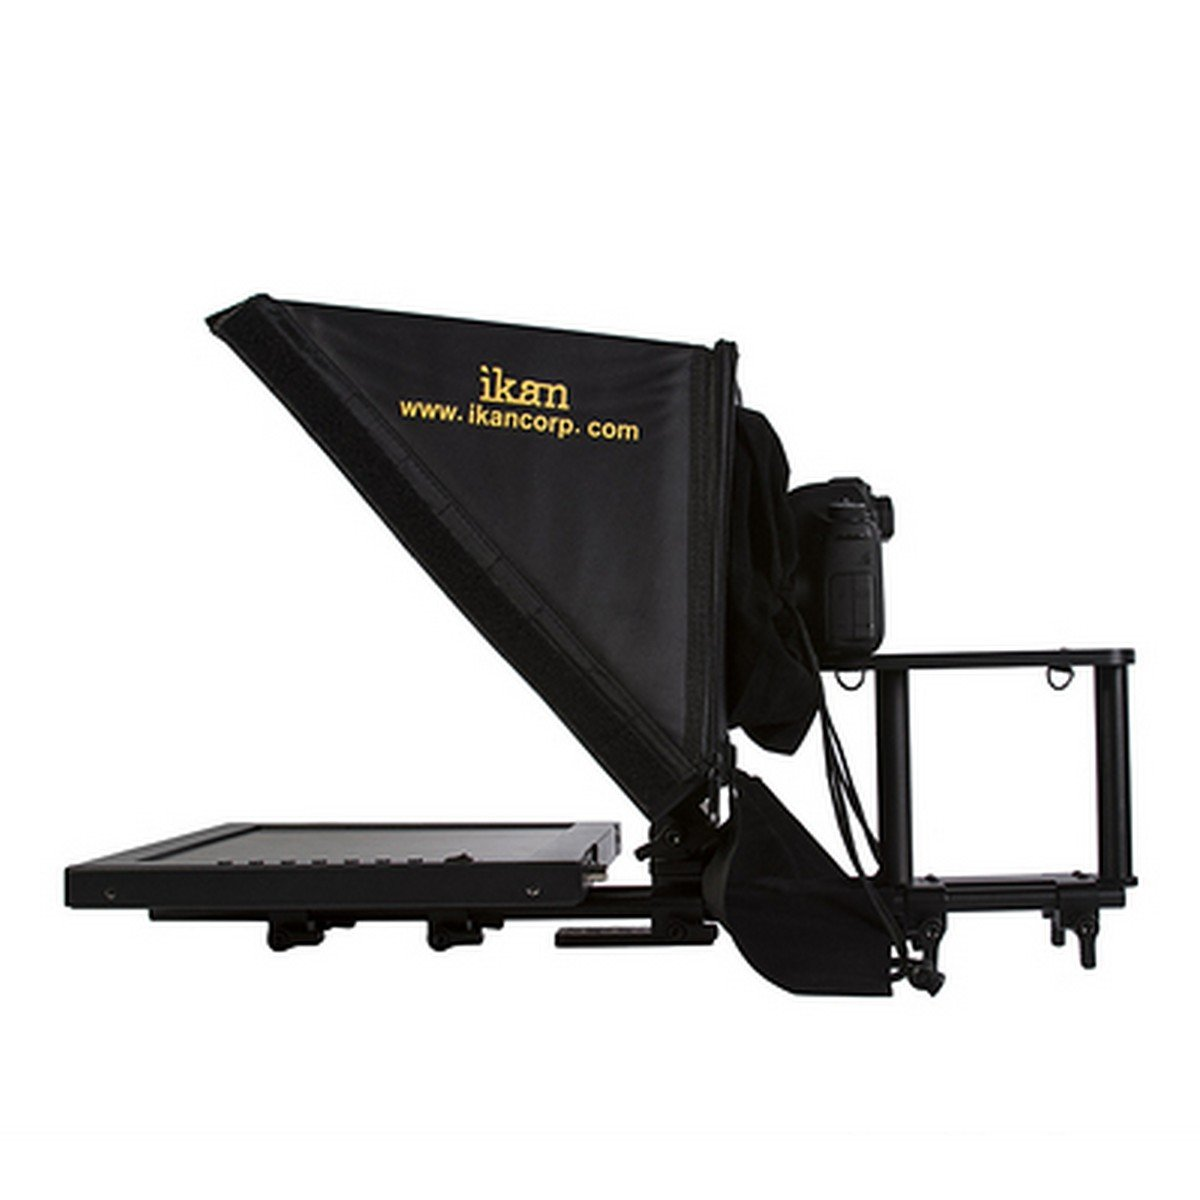 Ikan PT3500 | 15 inch Rod Based Location Studio Teleprompter by Ikan